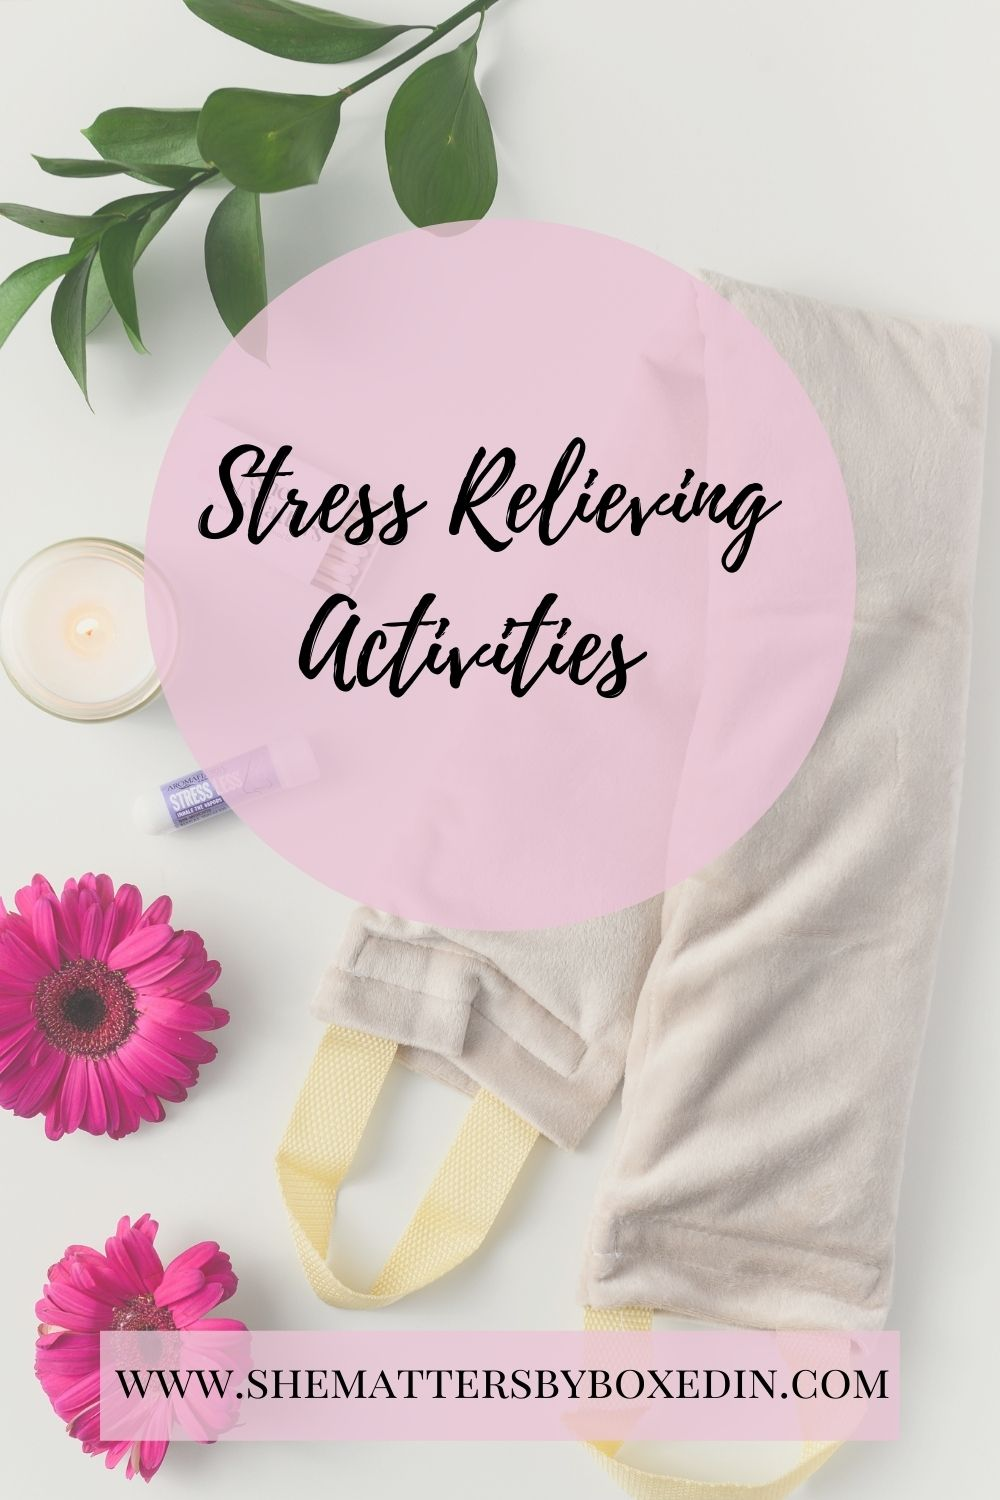 Stress Relieving Activities You'll Want to Do!